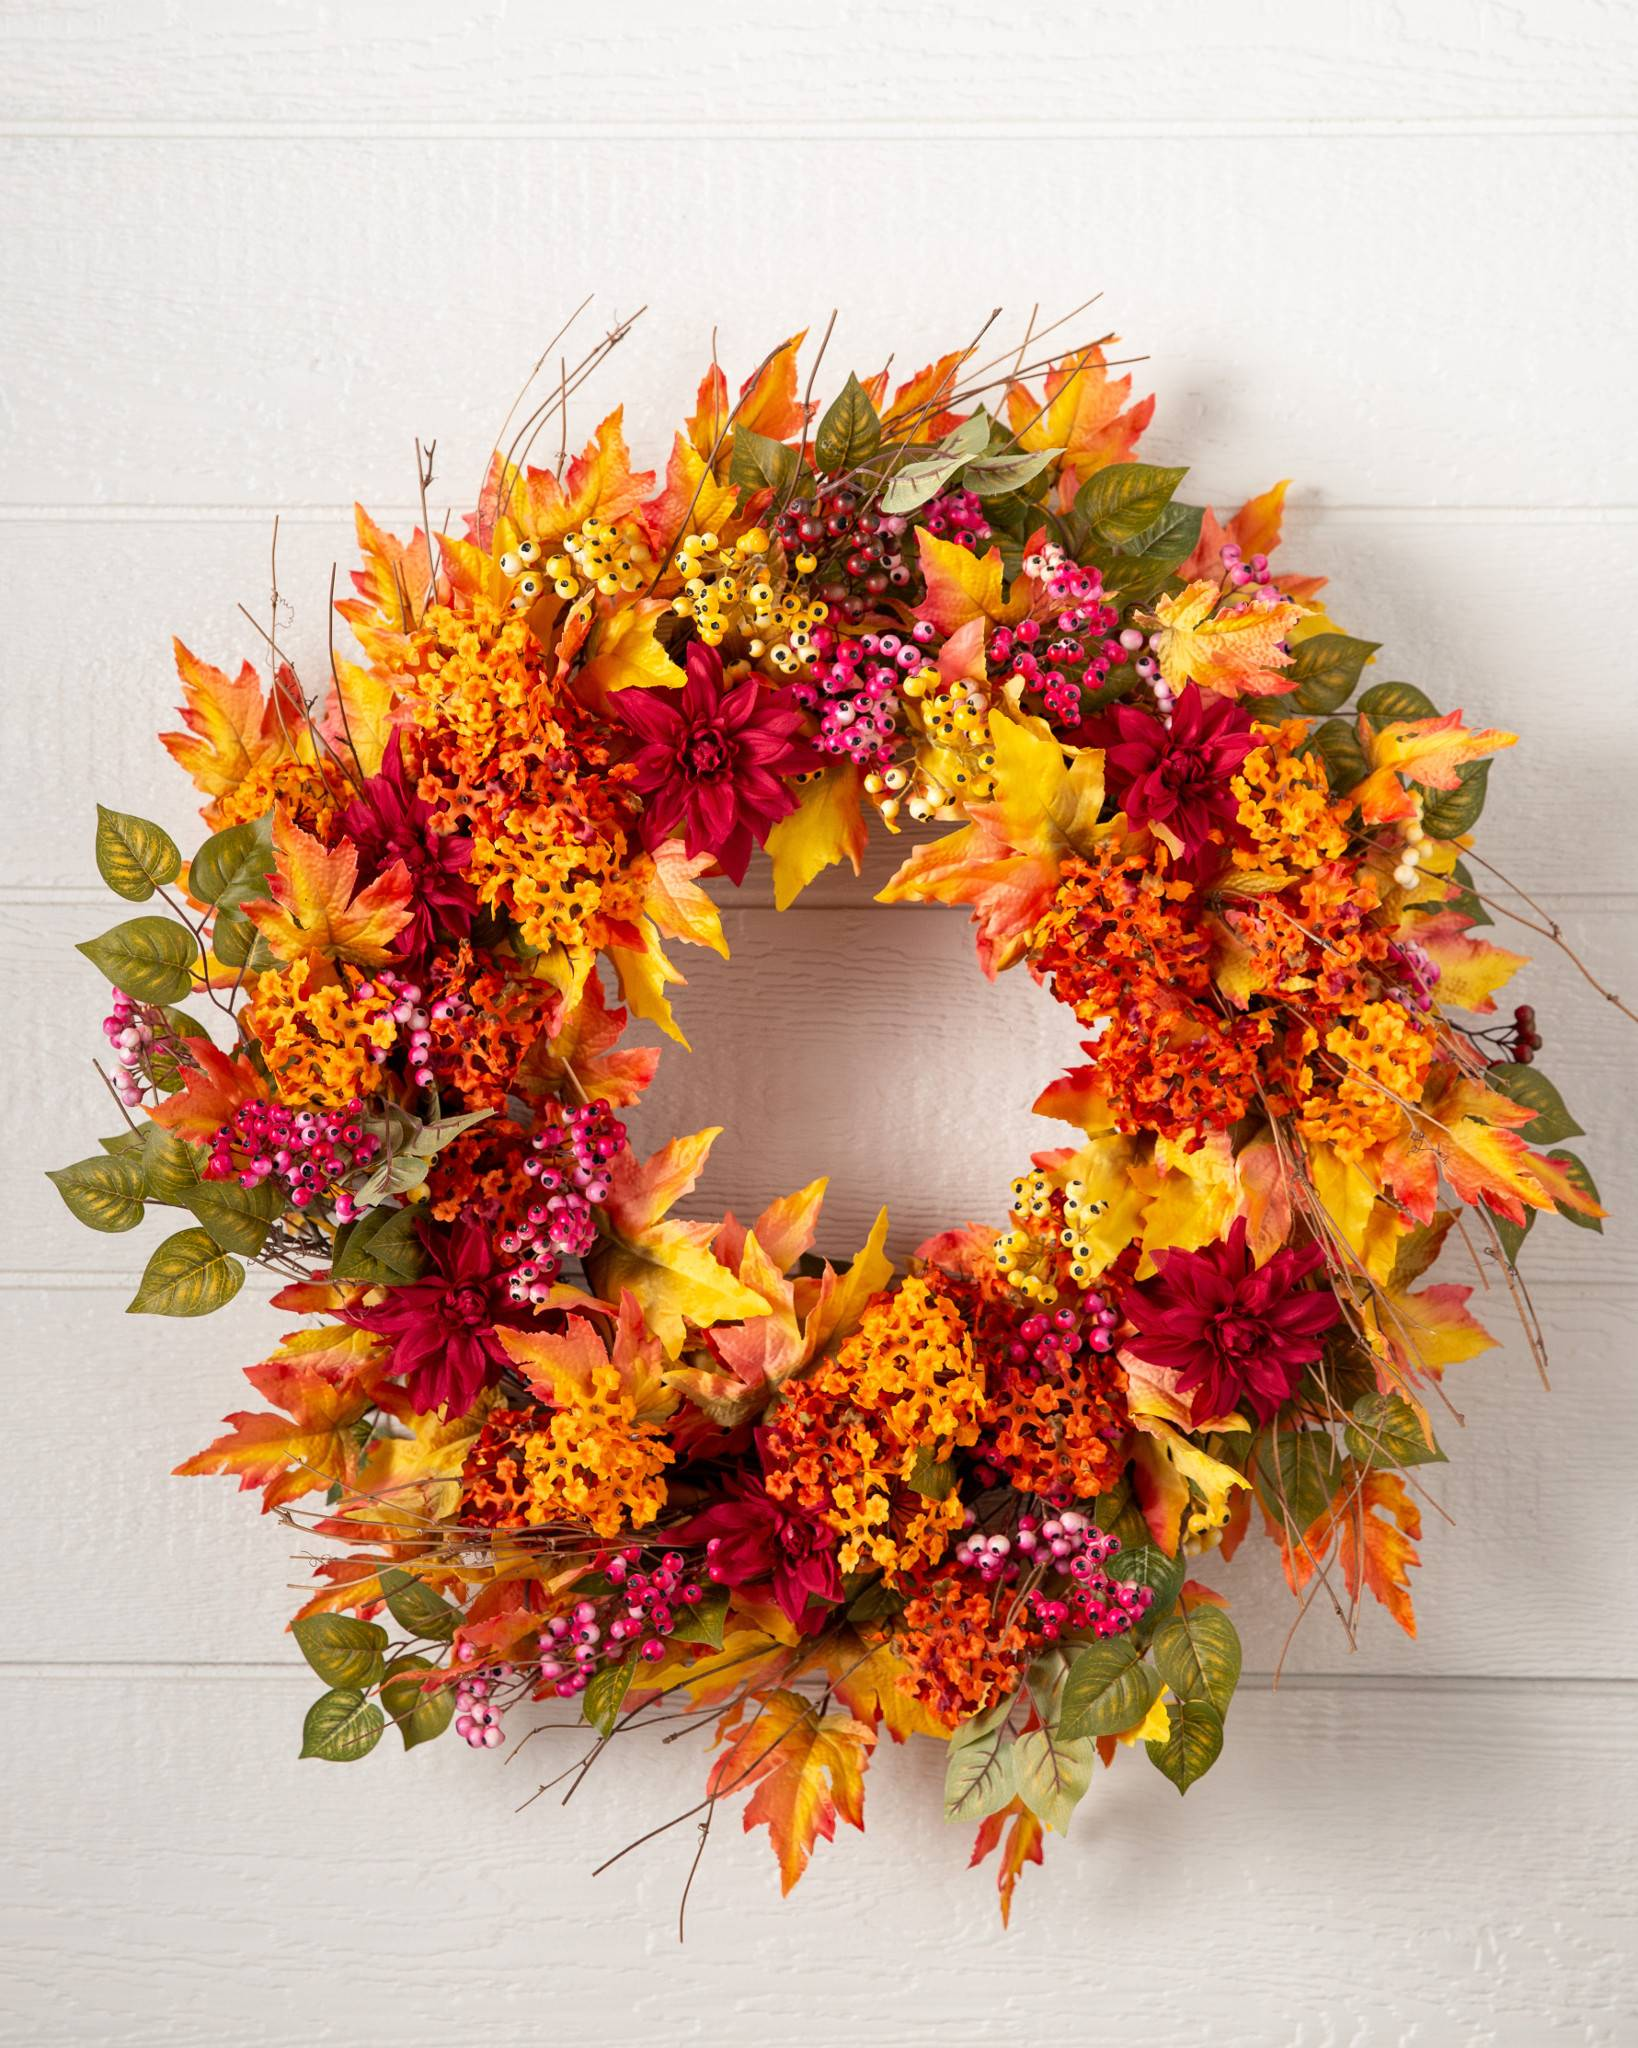 Outdoor Harvest Bloom Artificial Foliage | Balsam Hill